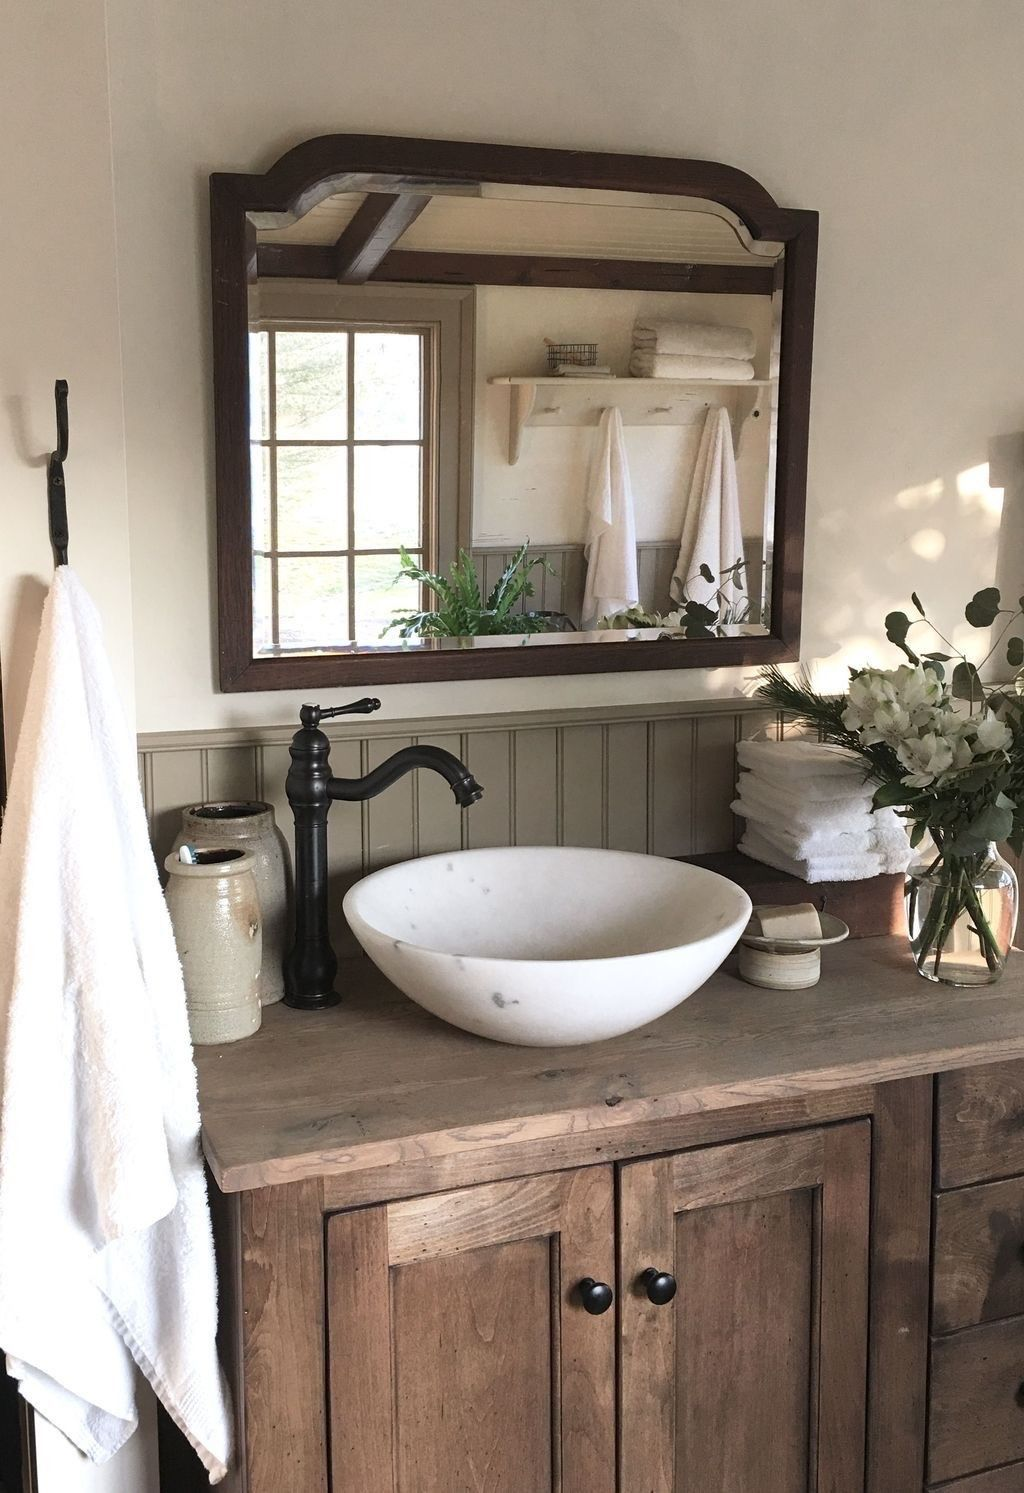 inspiring & dreamy in 2020 | small farmhouse bathroom, farmhouse bathroom decor, rustic bathrooms